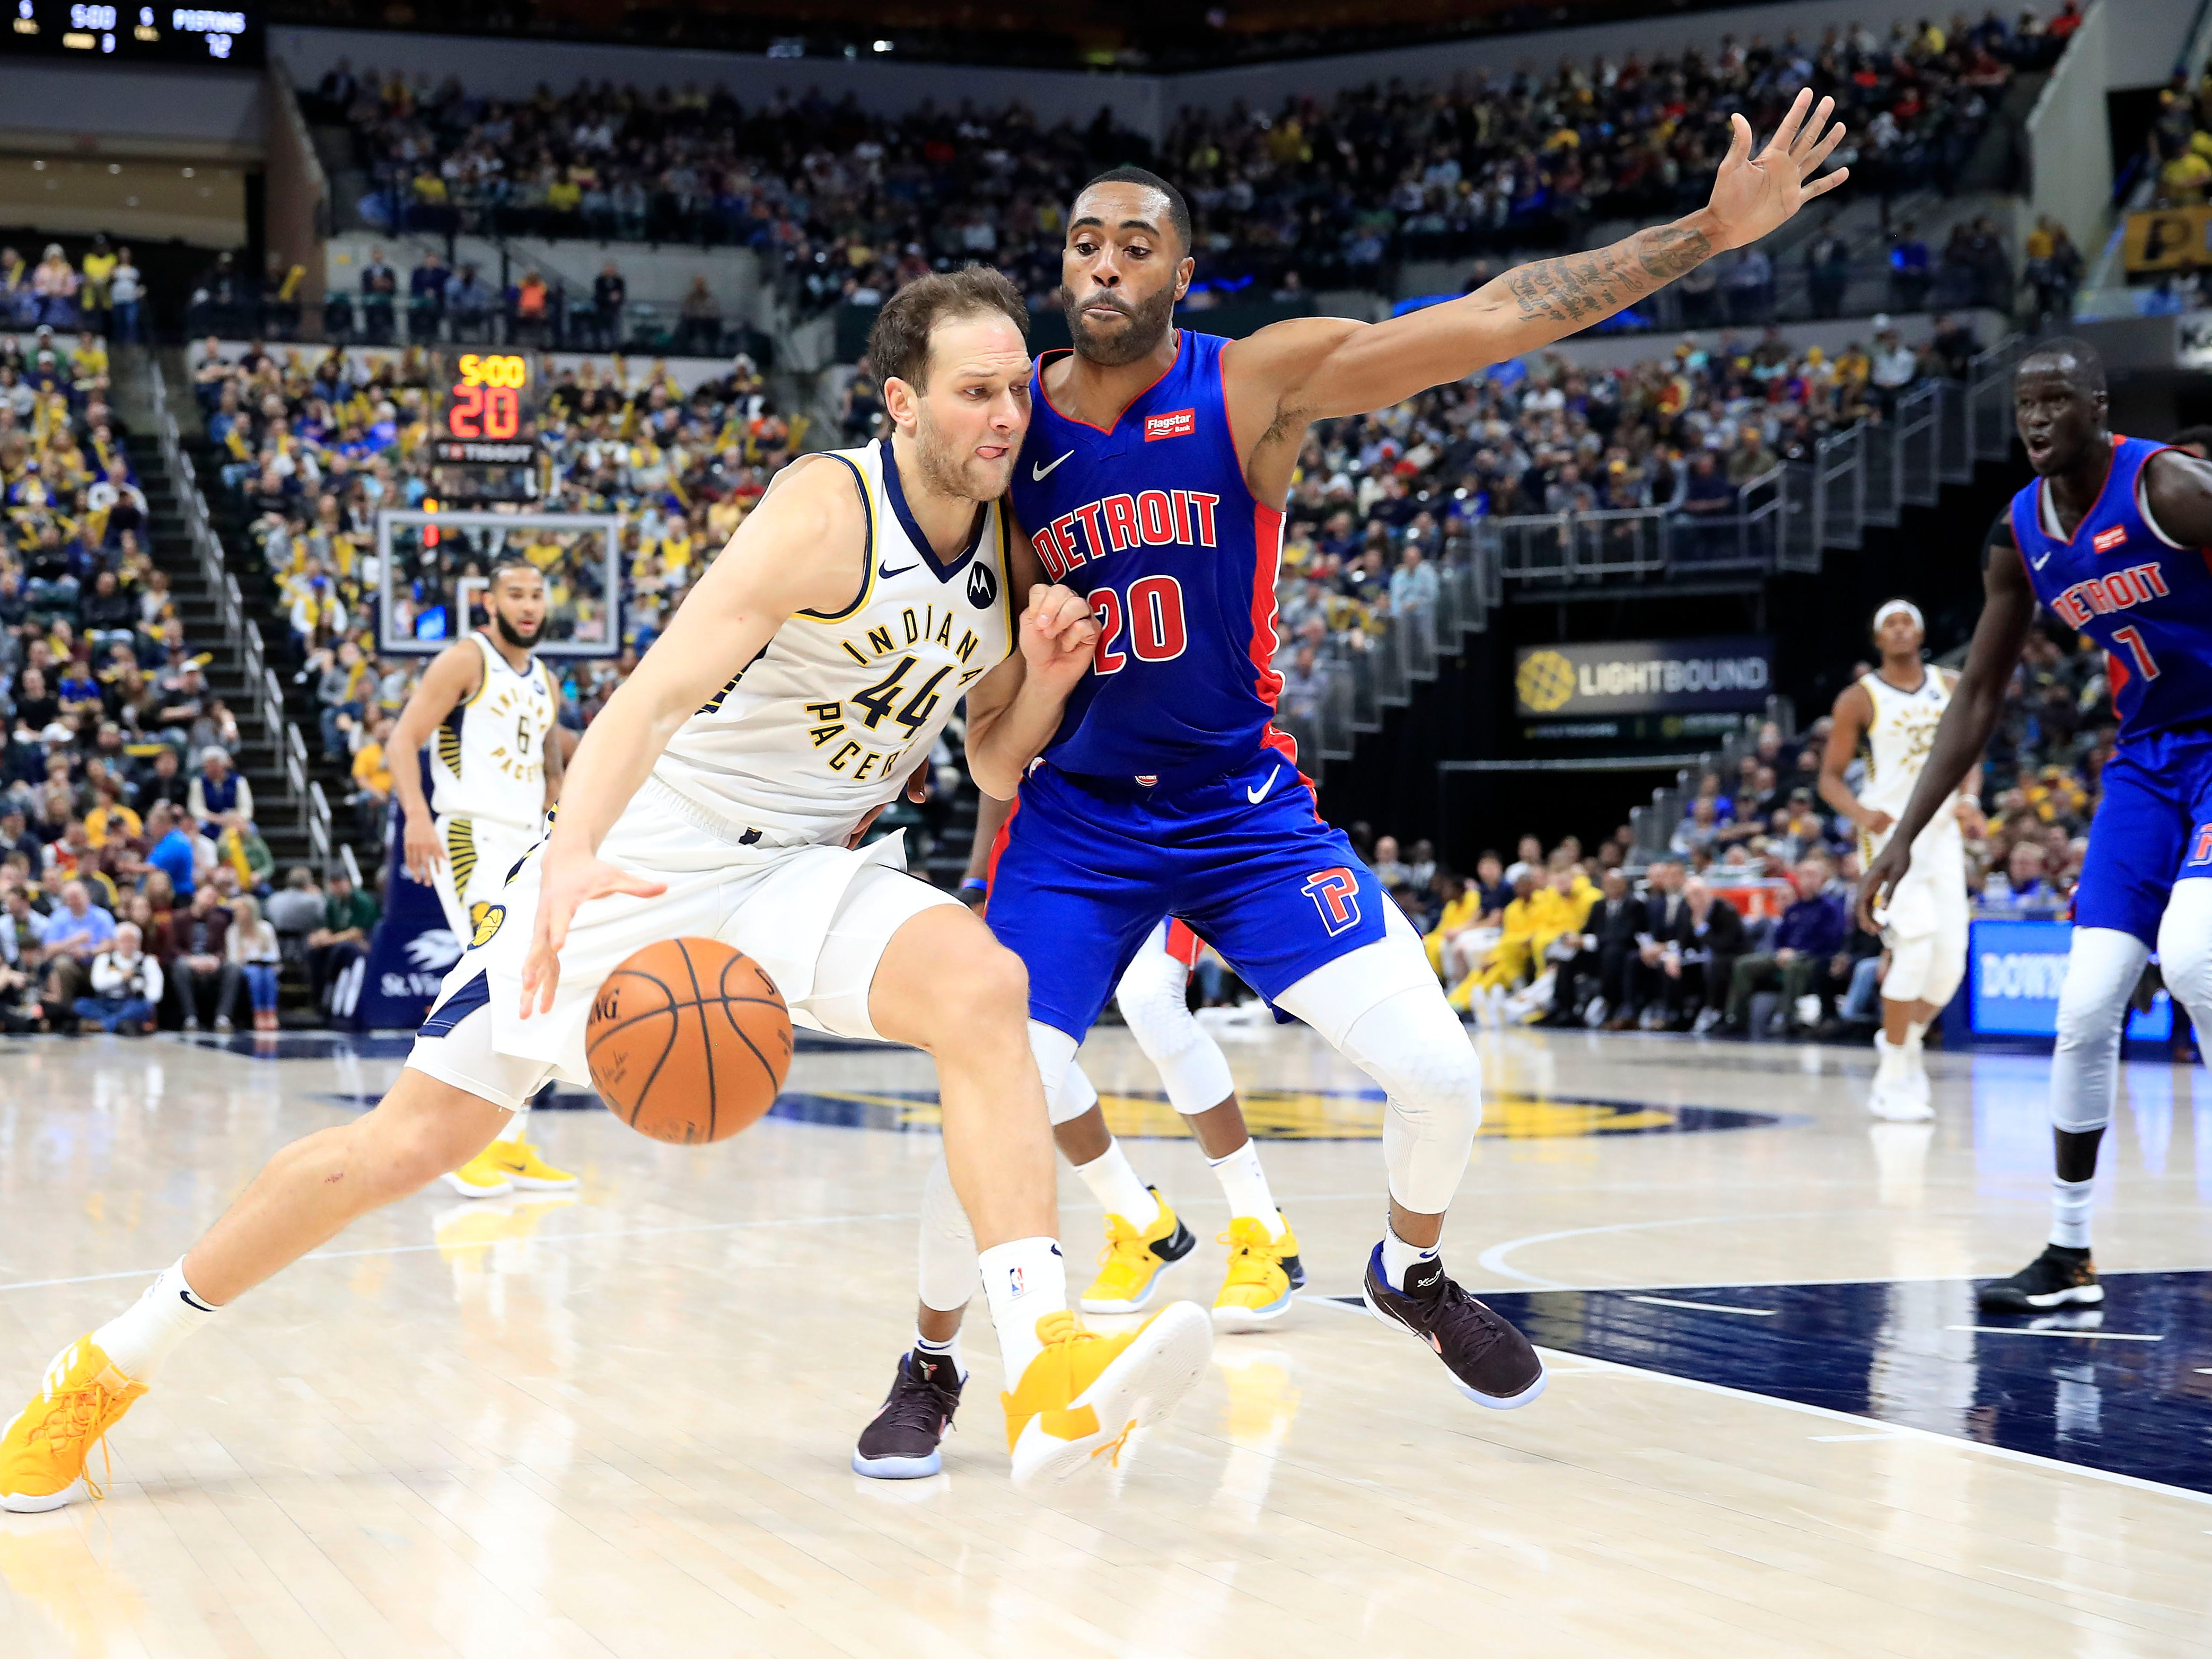 Indiana Pacers' Bojan Bogdanovic dribbles against the Detroit Pistons' Wayne Ellington at Bankers Life Fieldhouse on April 1, 2019 in Indianapolis.